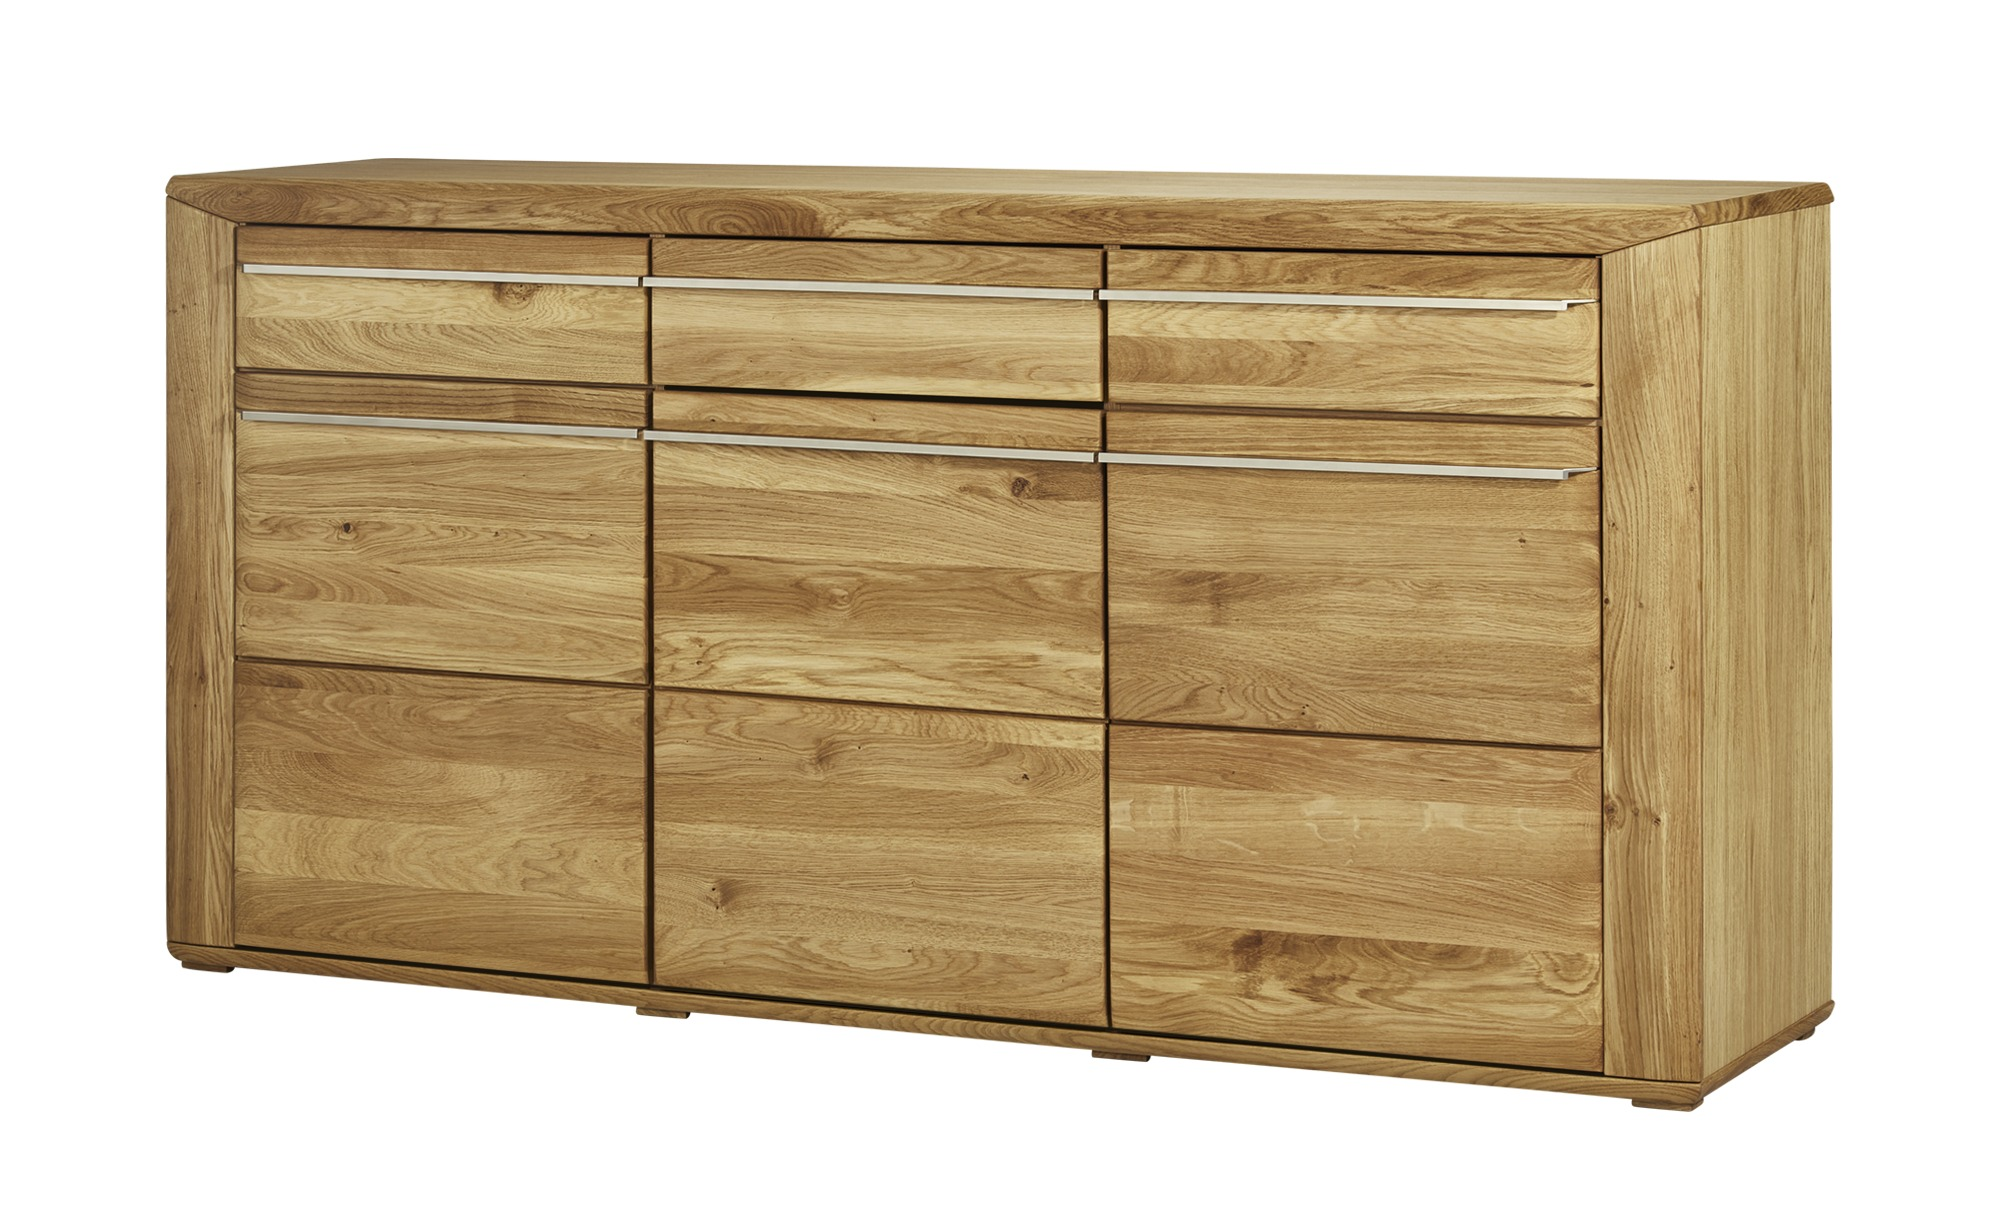 woodford sideboard leeds breite 175 cm h he 89 cm online. Black Bedroom Furniture Sets. Home Design Ideas